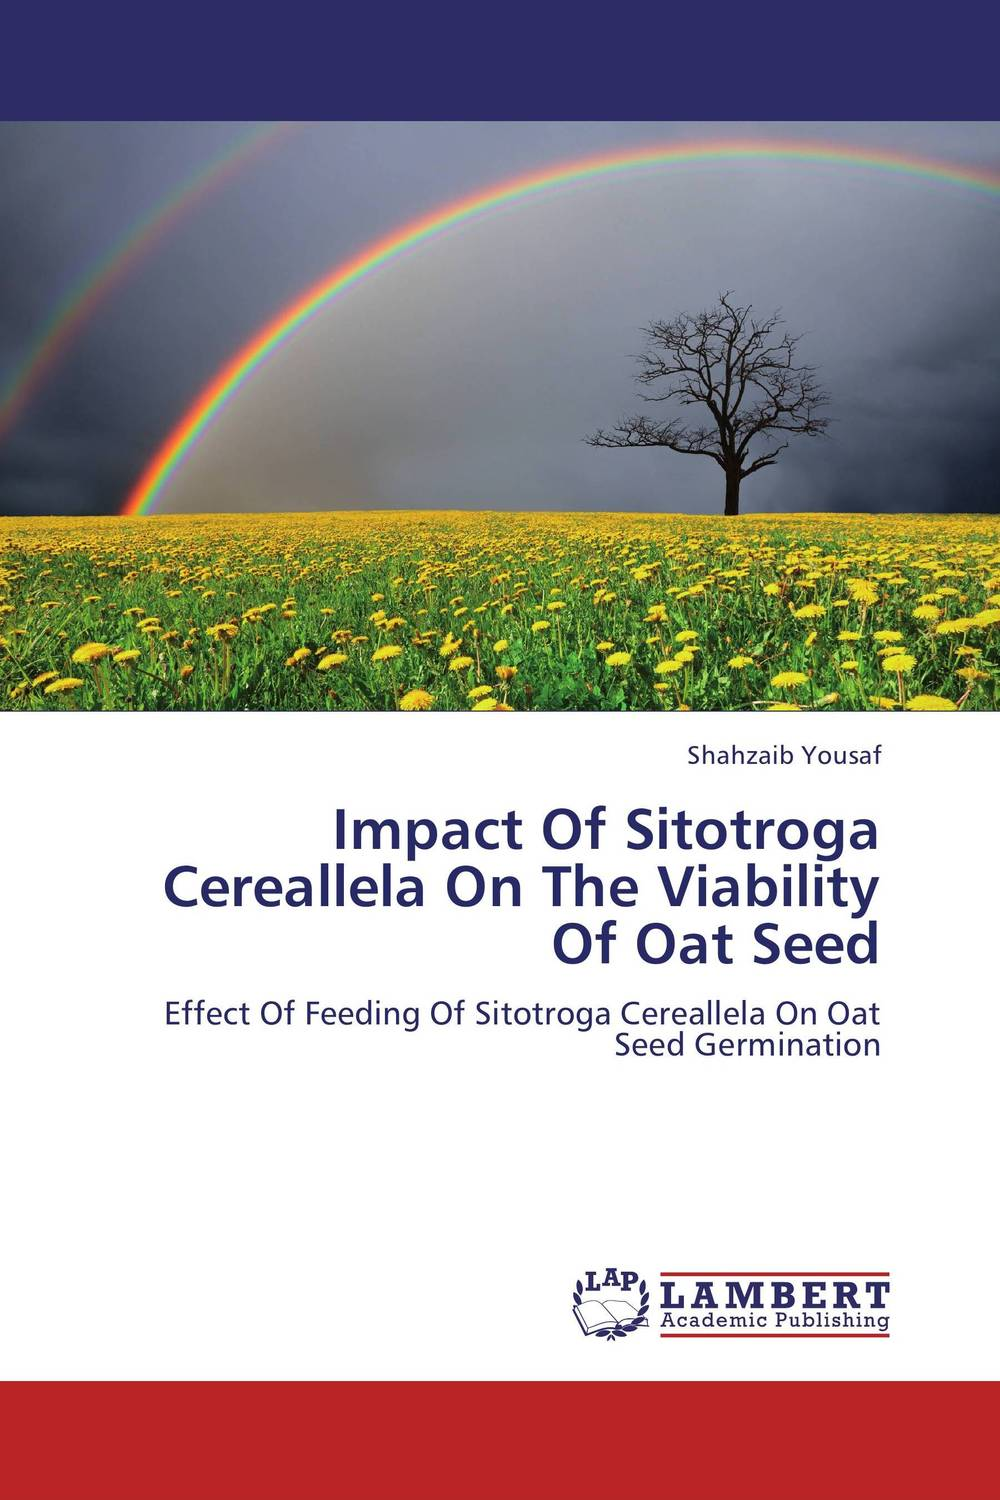 Impact Of Sitotroga Cereallela On The Viability Of Oat Seed effect of medicinal plant extracts on the viability of protoscoleces